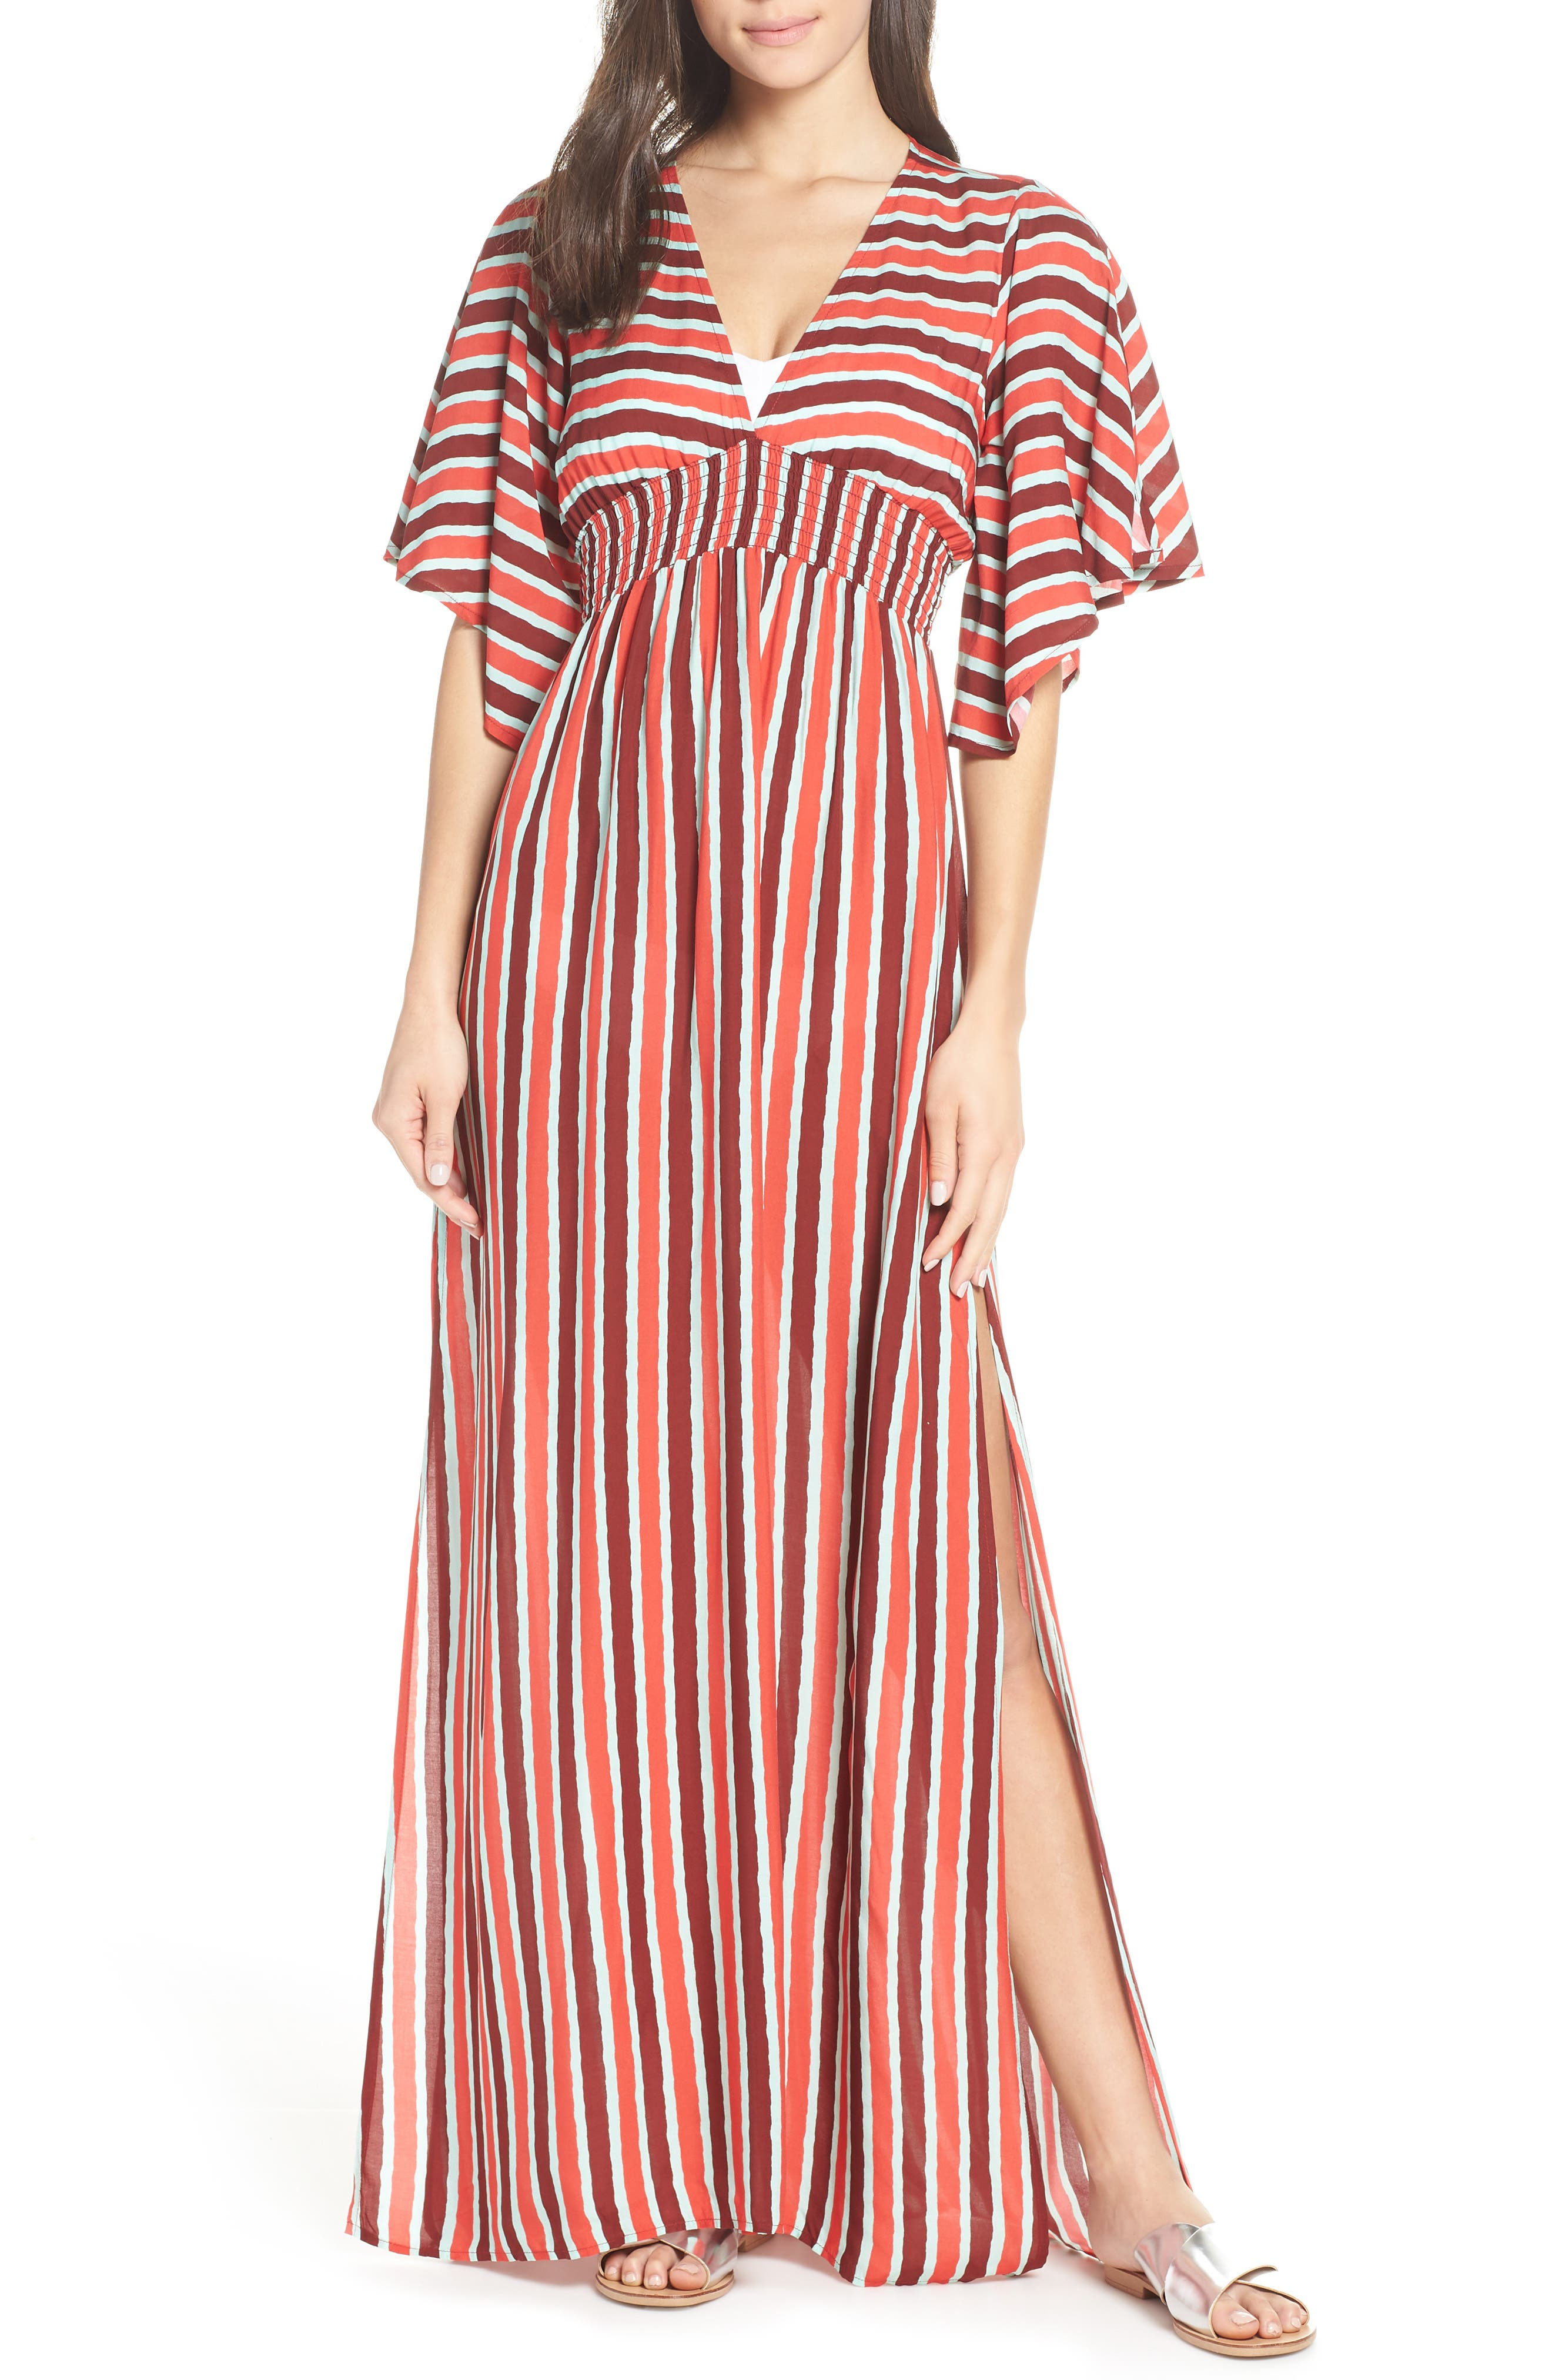 Morning Glam Cover-Up Maxi Dress,                             Main thumbnail 1, color,                             MULTI RED